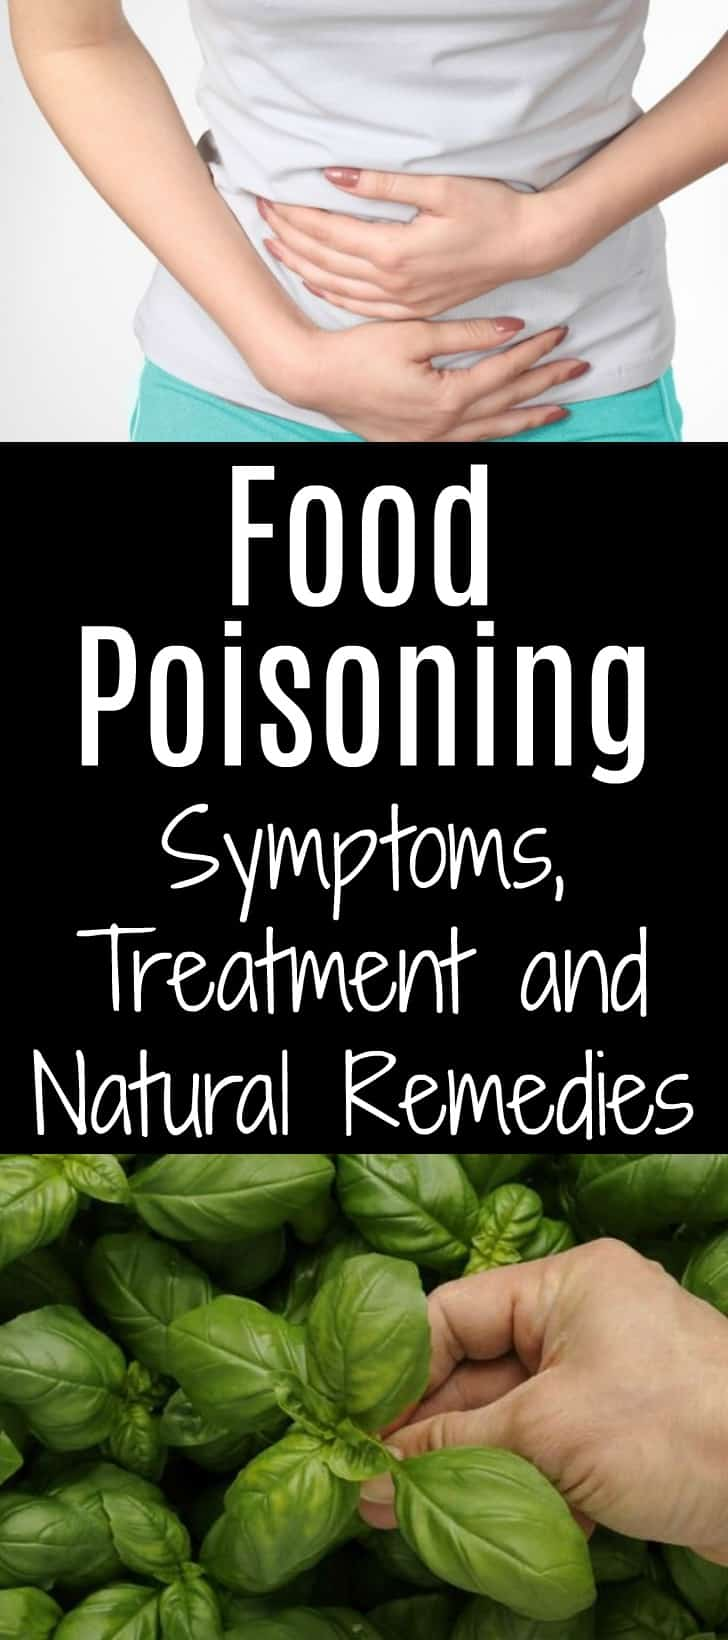 Can Food Poisoning Start After  Hours